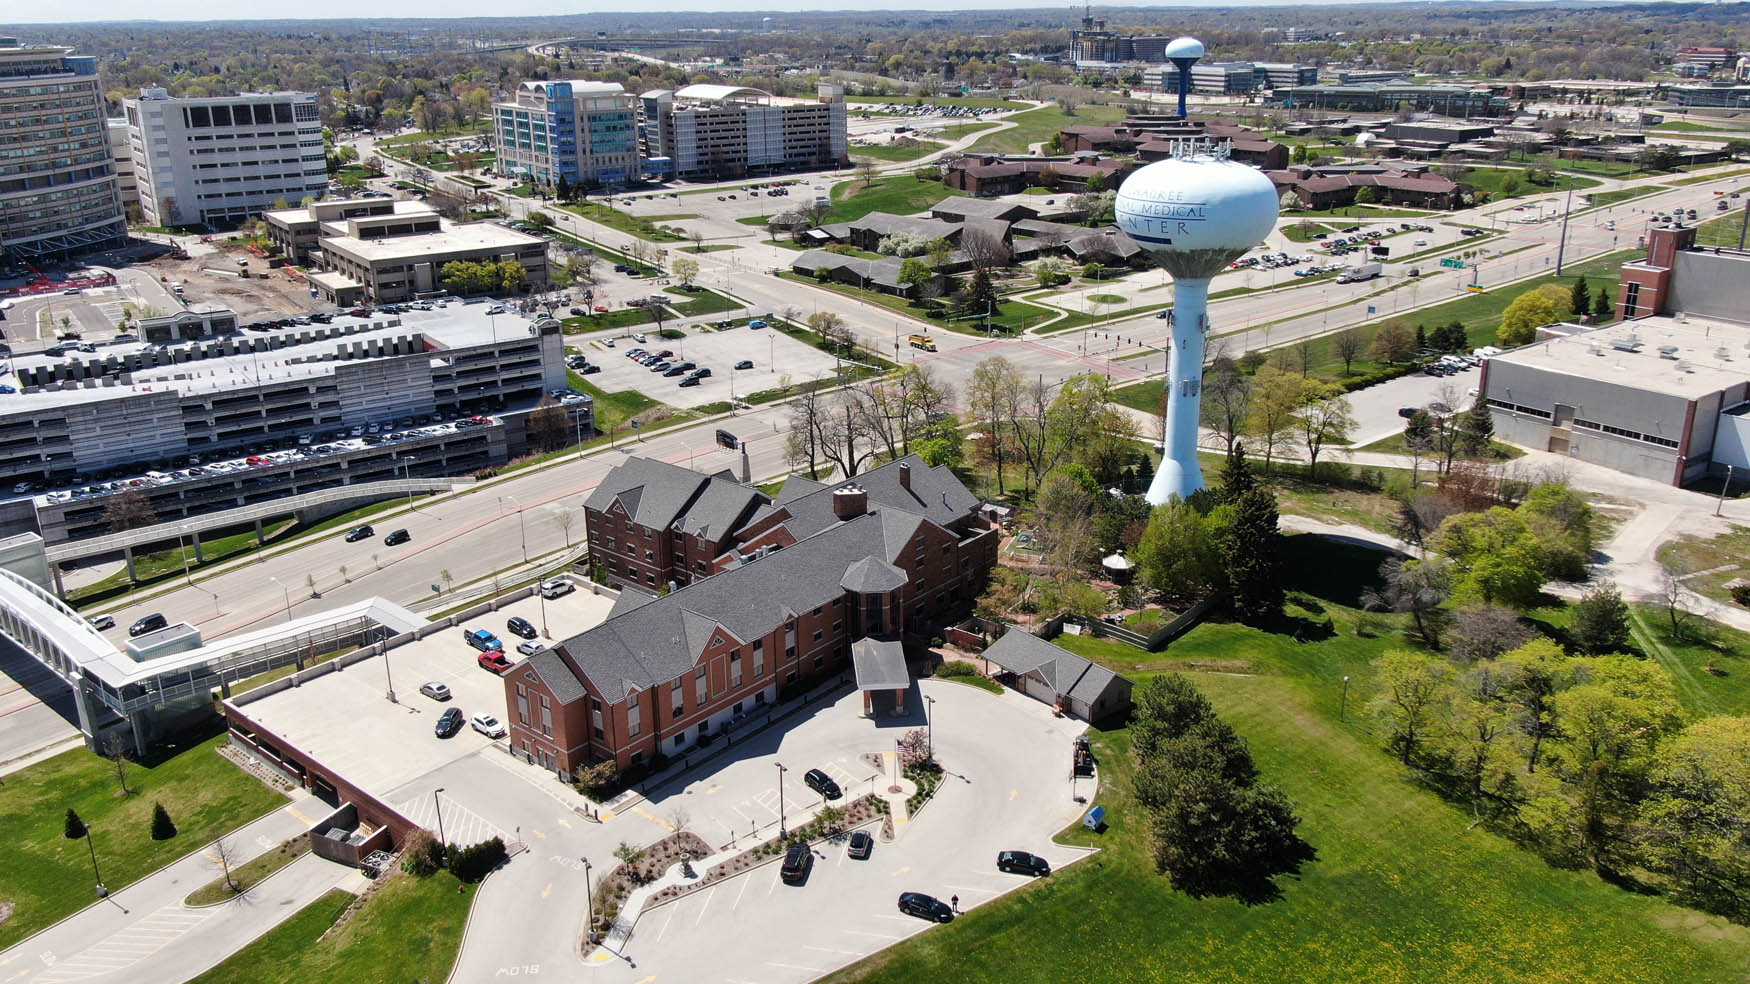 2021 Aerial View of RMHC